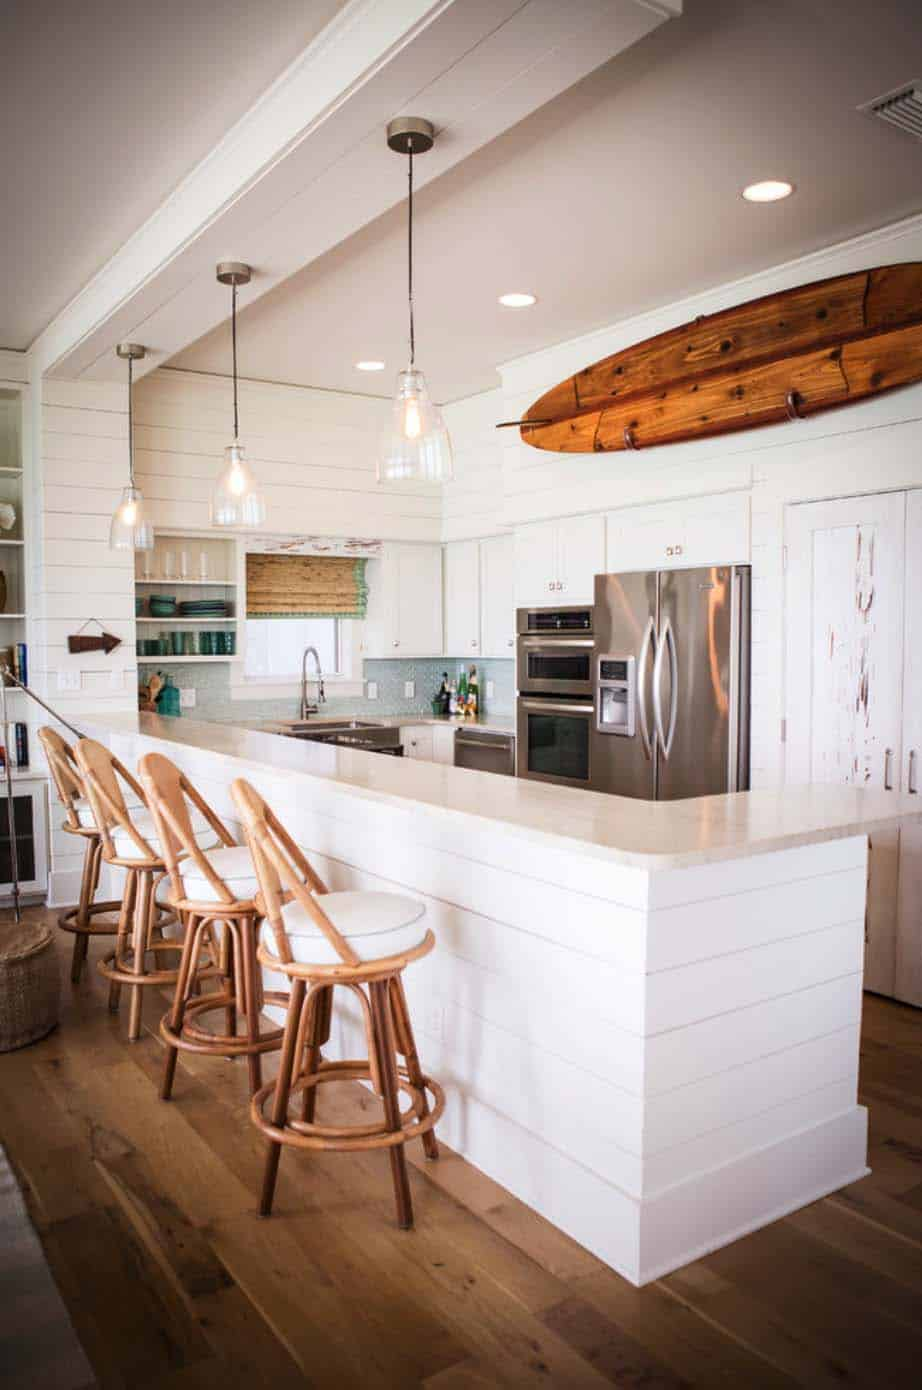 Shiplap Wall Ideas Home-25-1 Kindesign